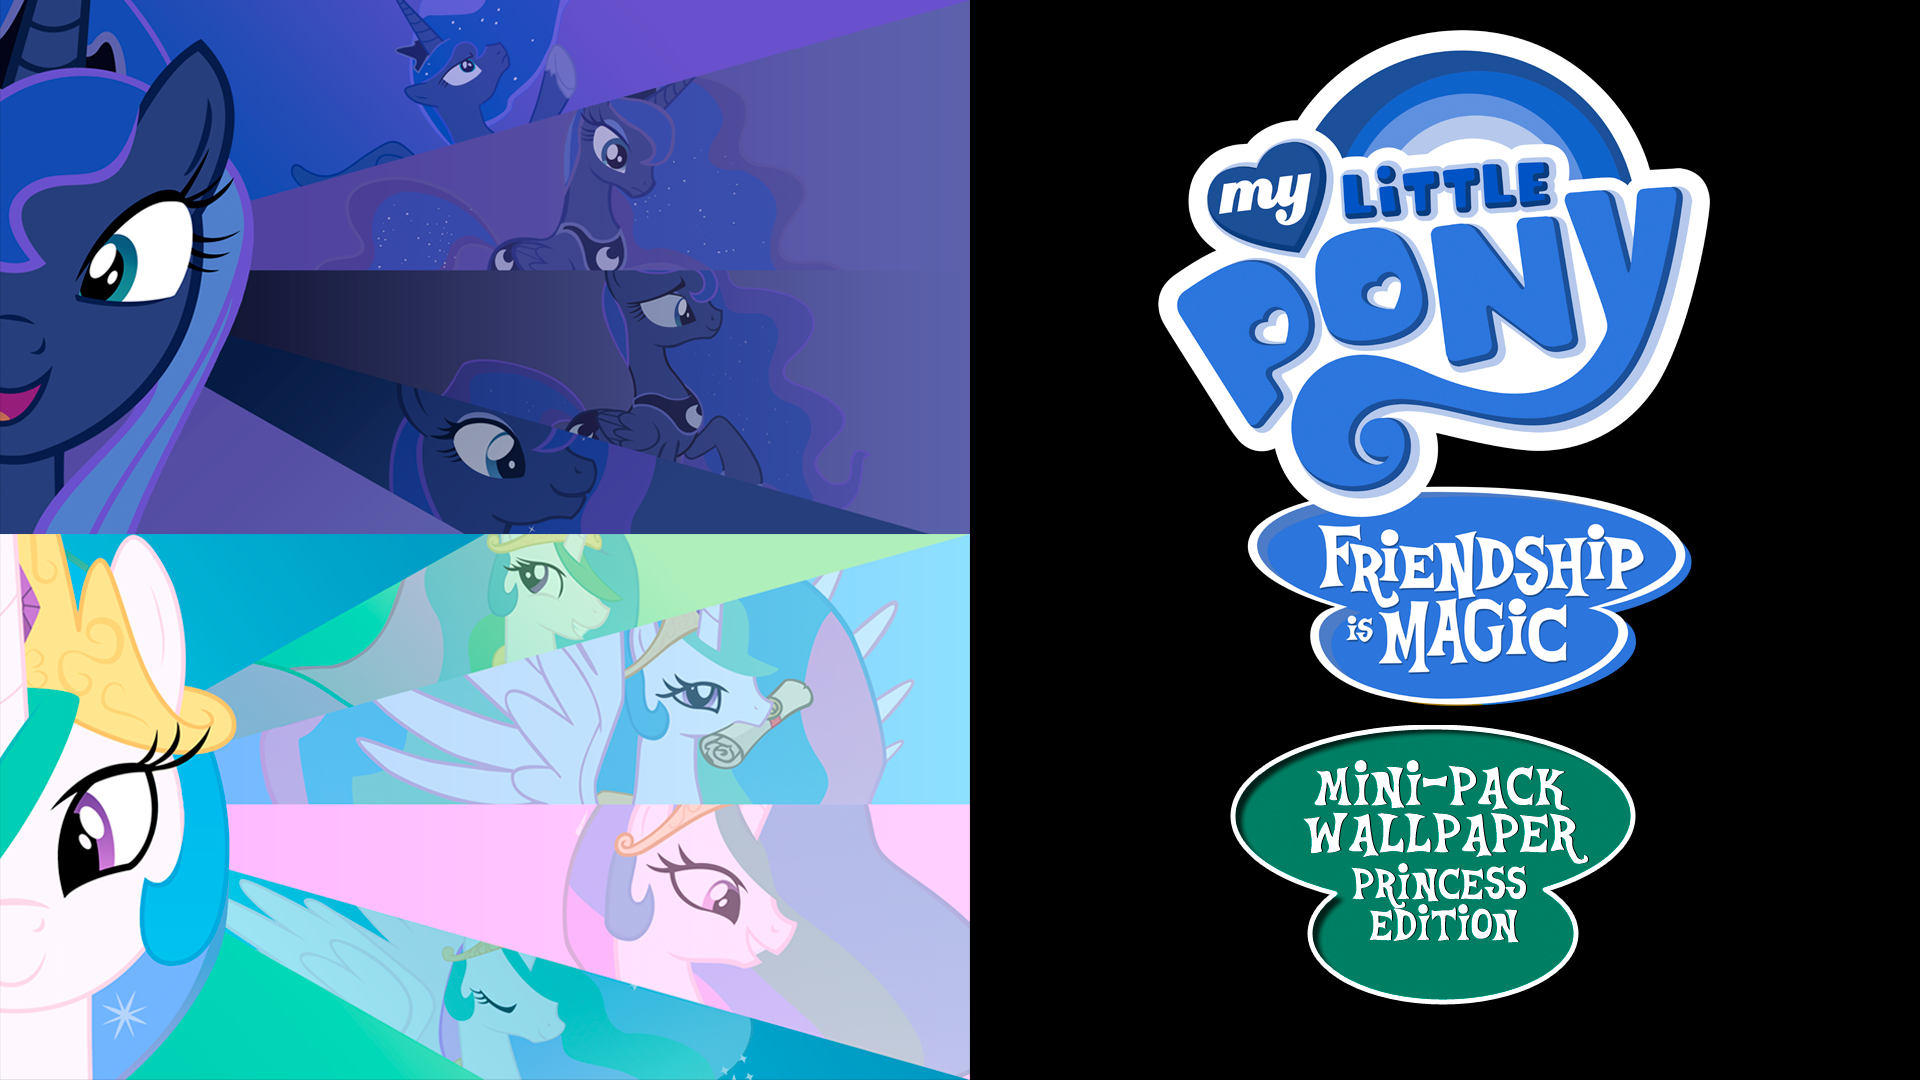 my little pony fim mini-pack wallpaper princess edbluedragonhans